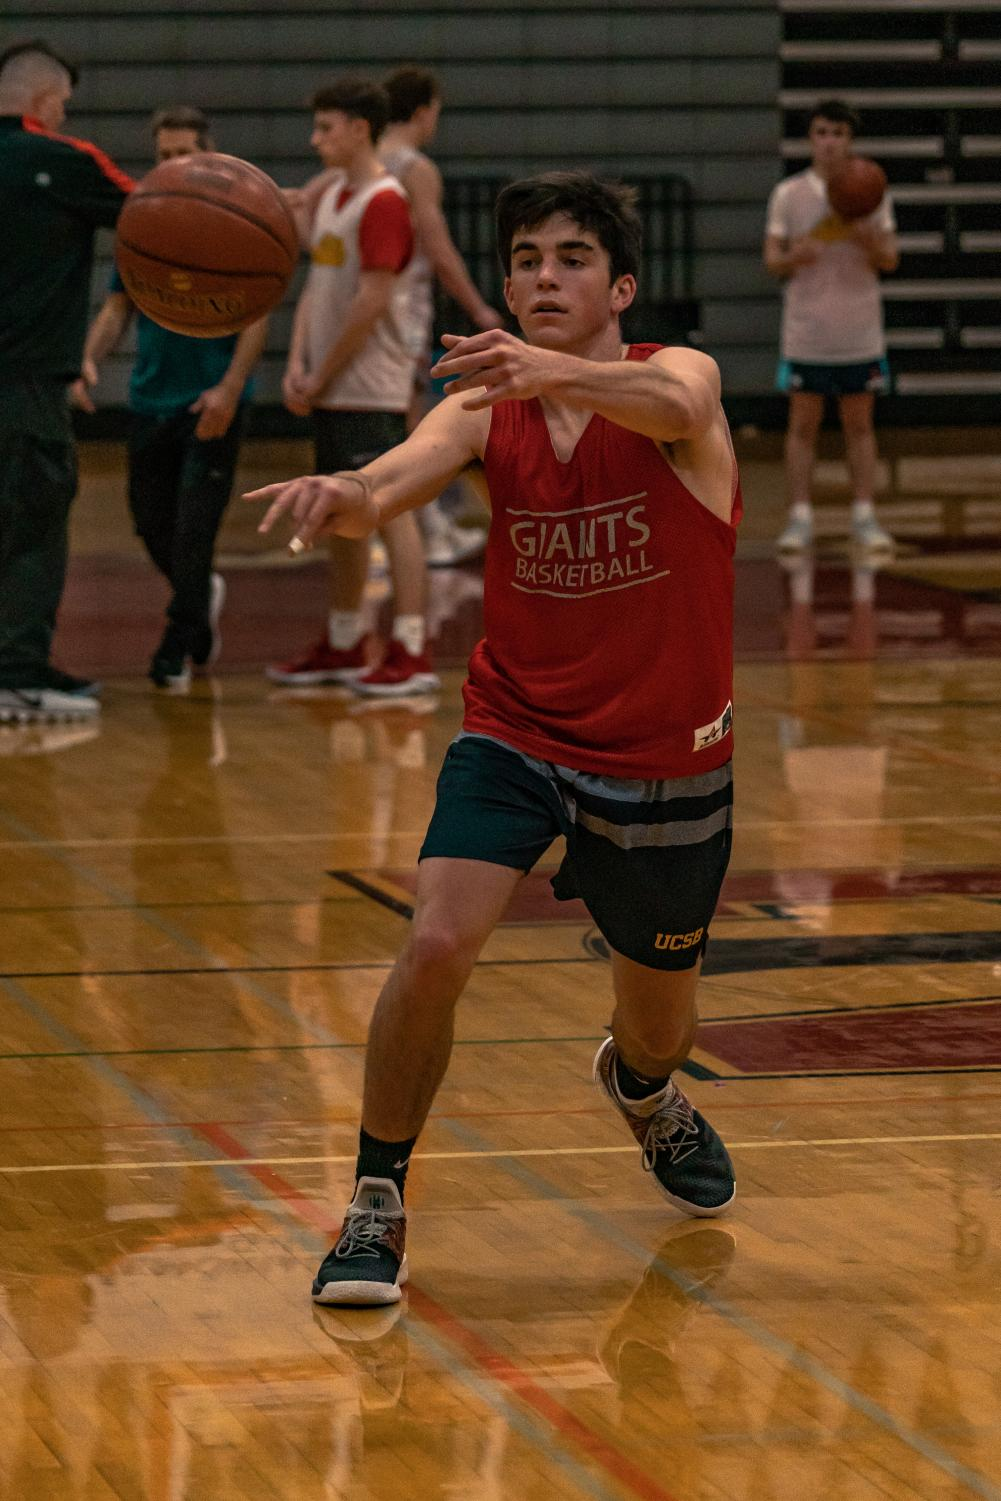 Jake Mathews, who won Marin IJ's prep of the week on Dec 17. 2018, passes the ball to his teammate during a ball control drill in practice.